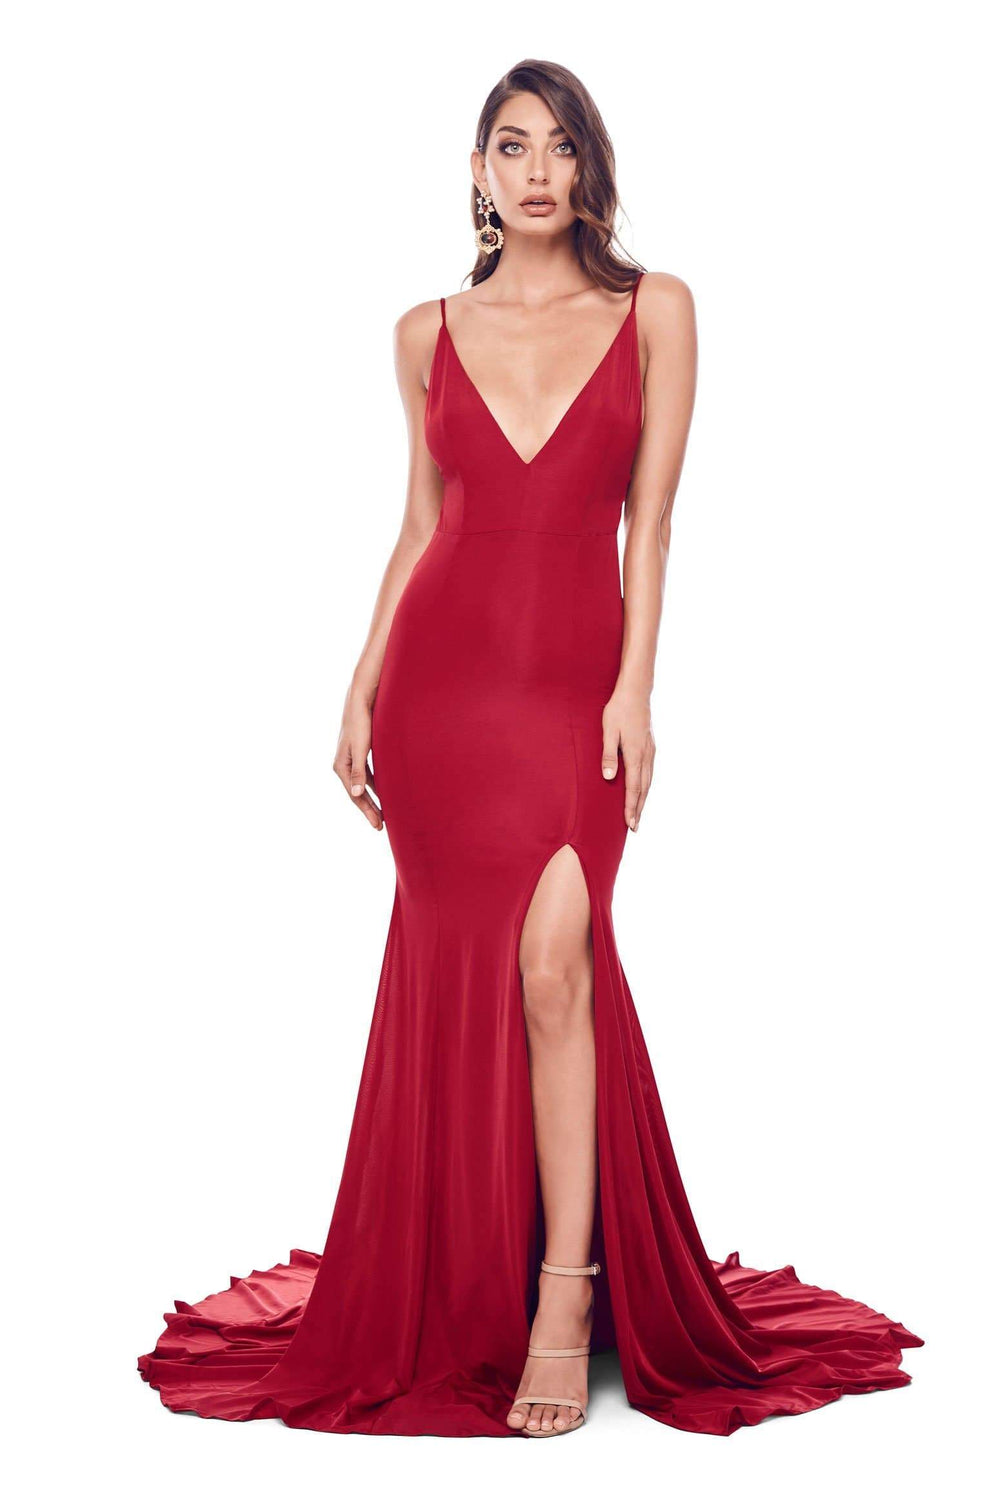 Alyona - Wine Red Jersey Gown | Plunge Neck, Low Back & Side Slit